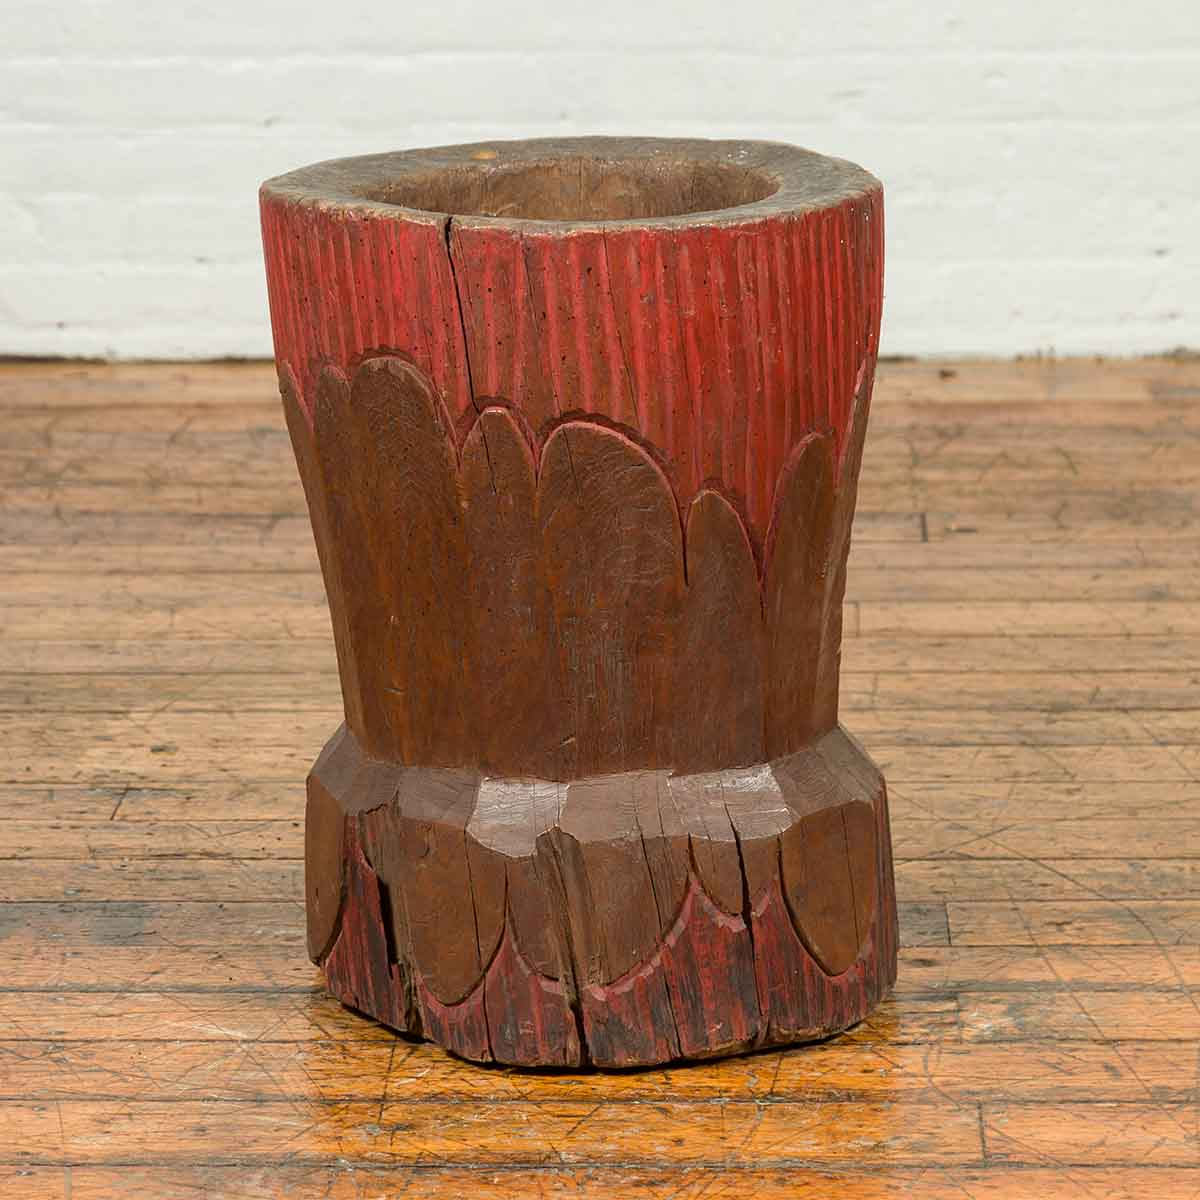 Antique Japanese Wooden Planter with Rustic Appearance and Red Patina